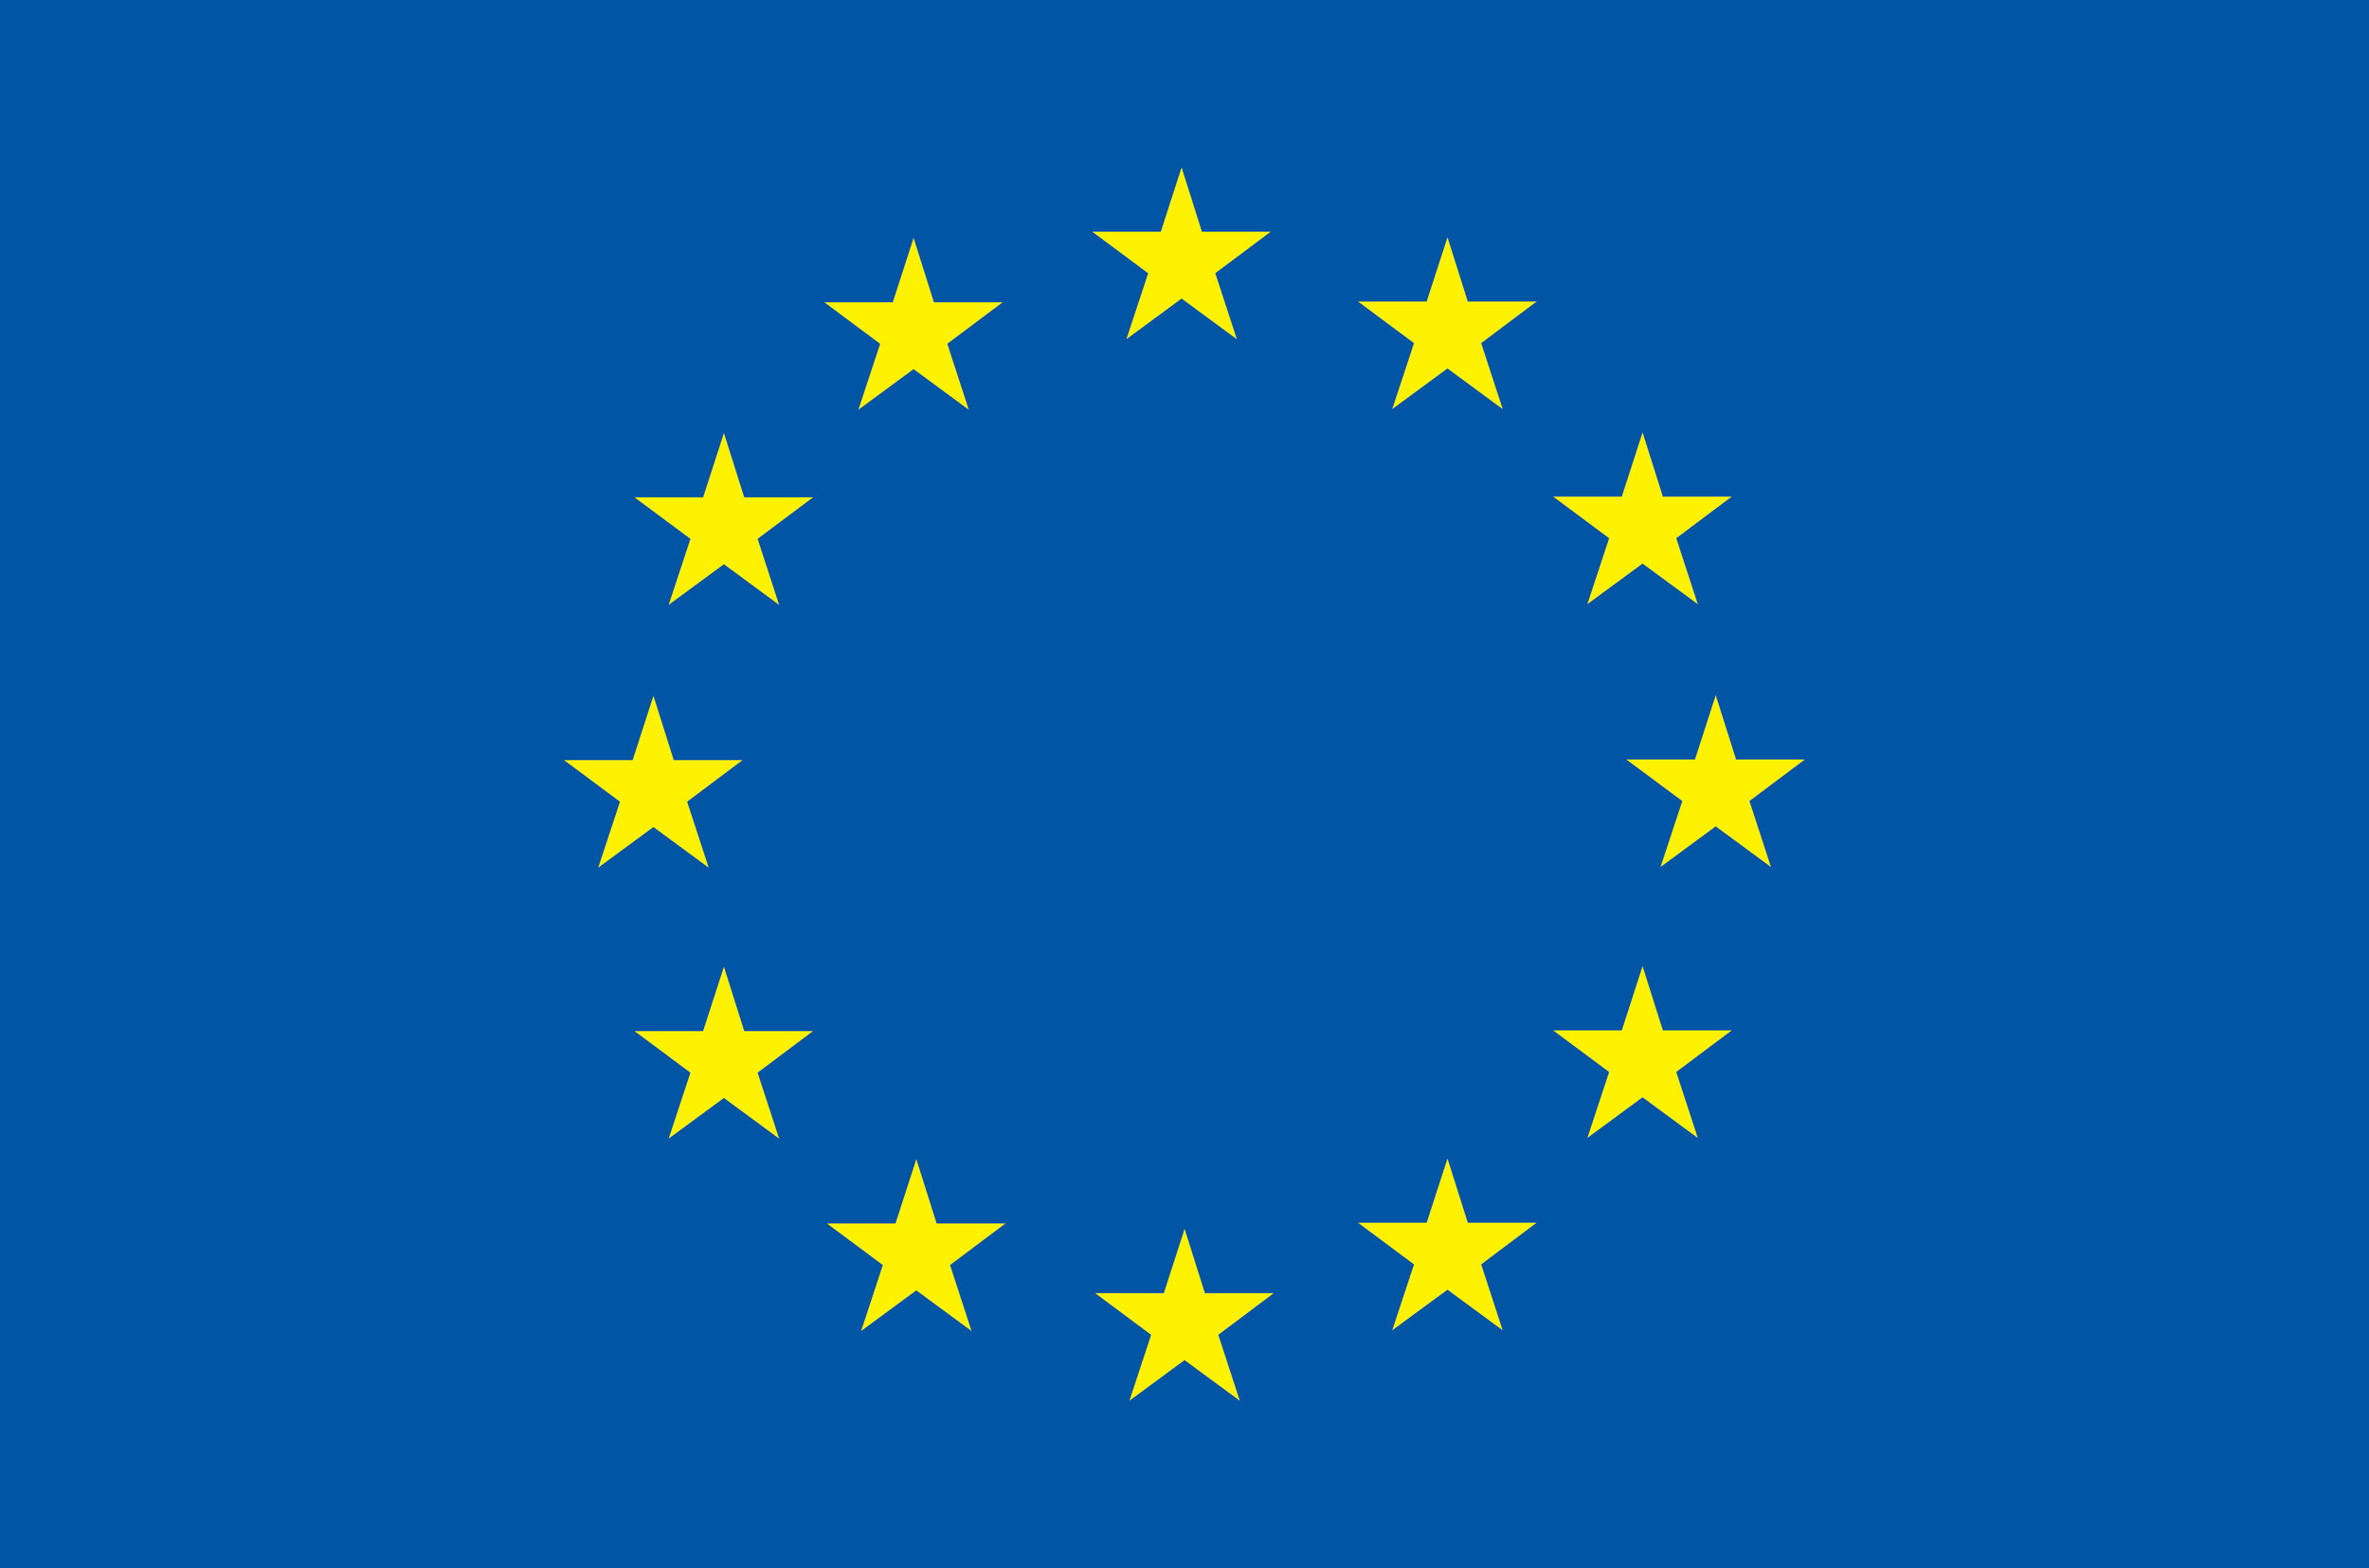 eu logo high resolution (1).jpg